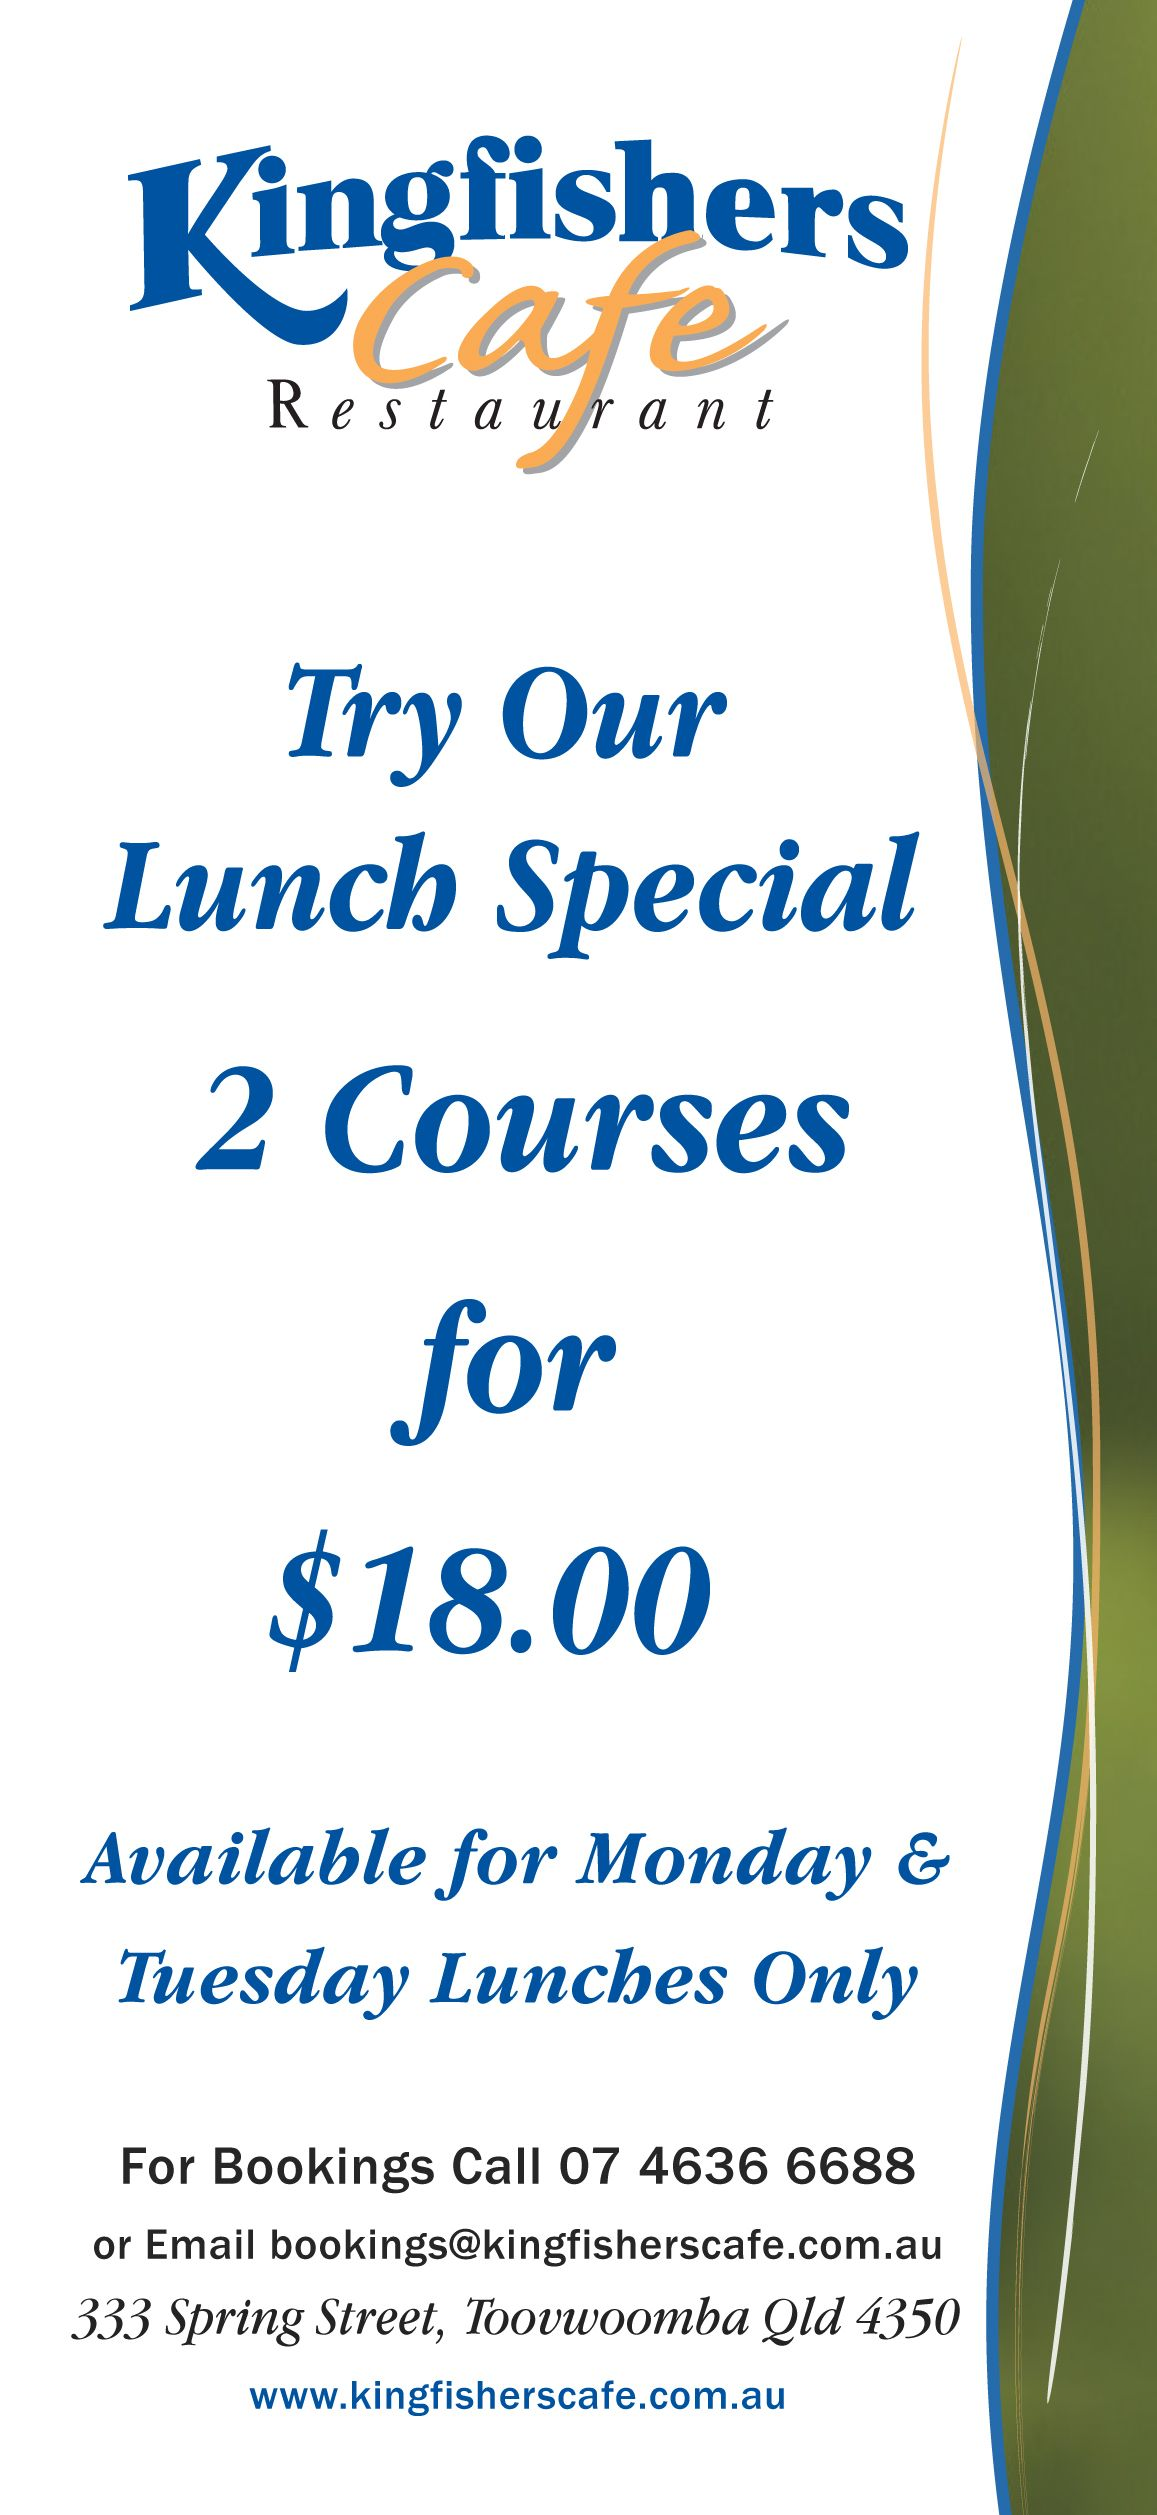 Lunch special lunch specials cafe menu lunch